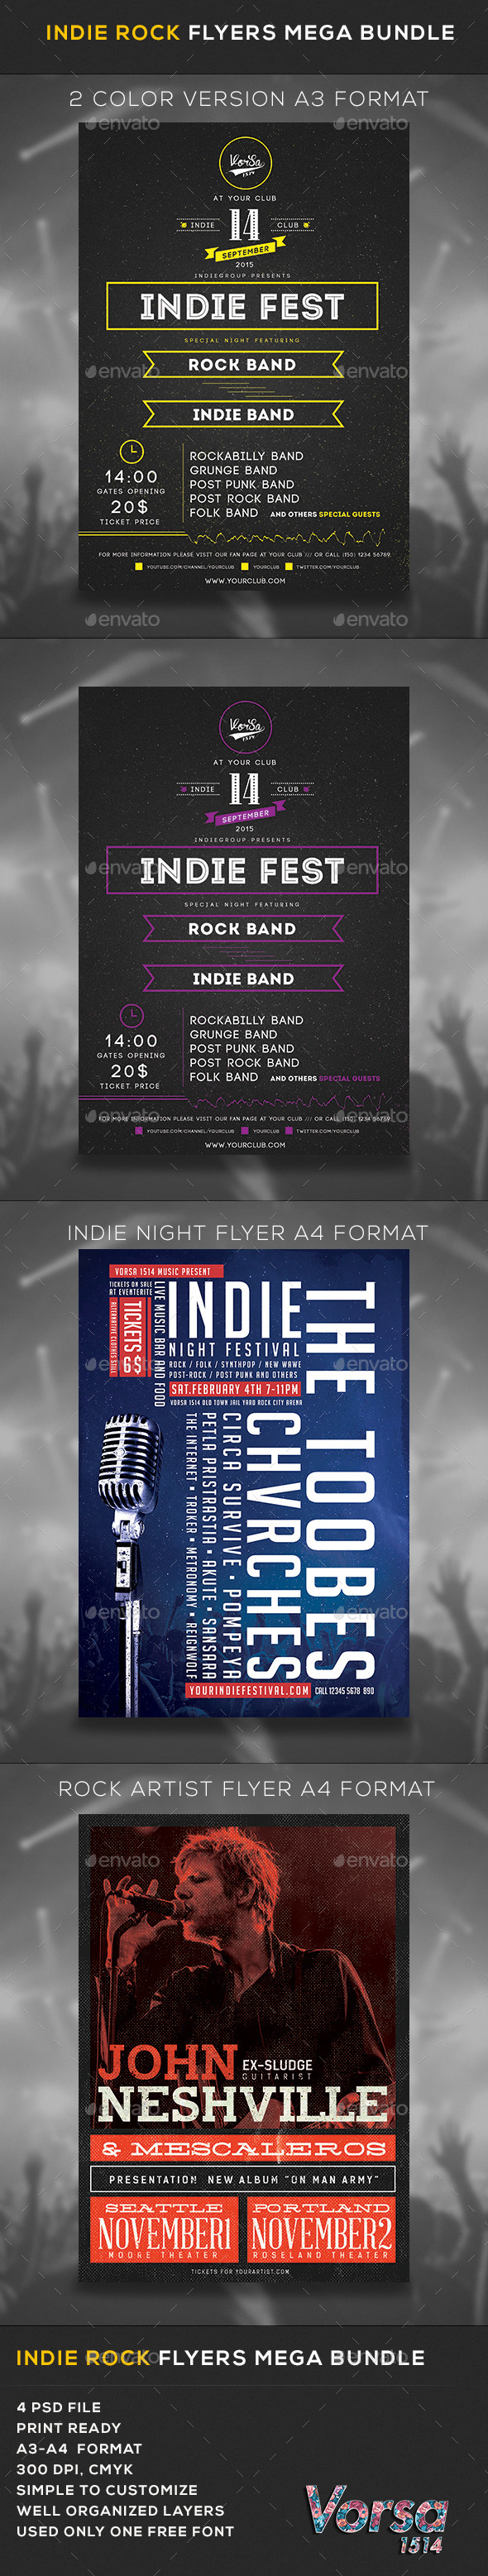 GraphicRiver Indie Rock Flyers Mega Bundle 11474028